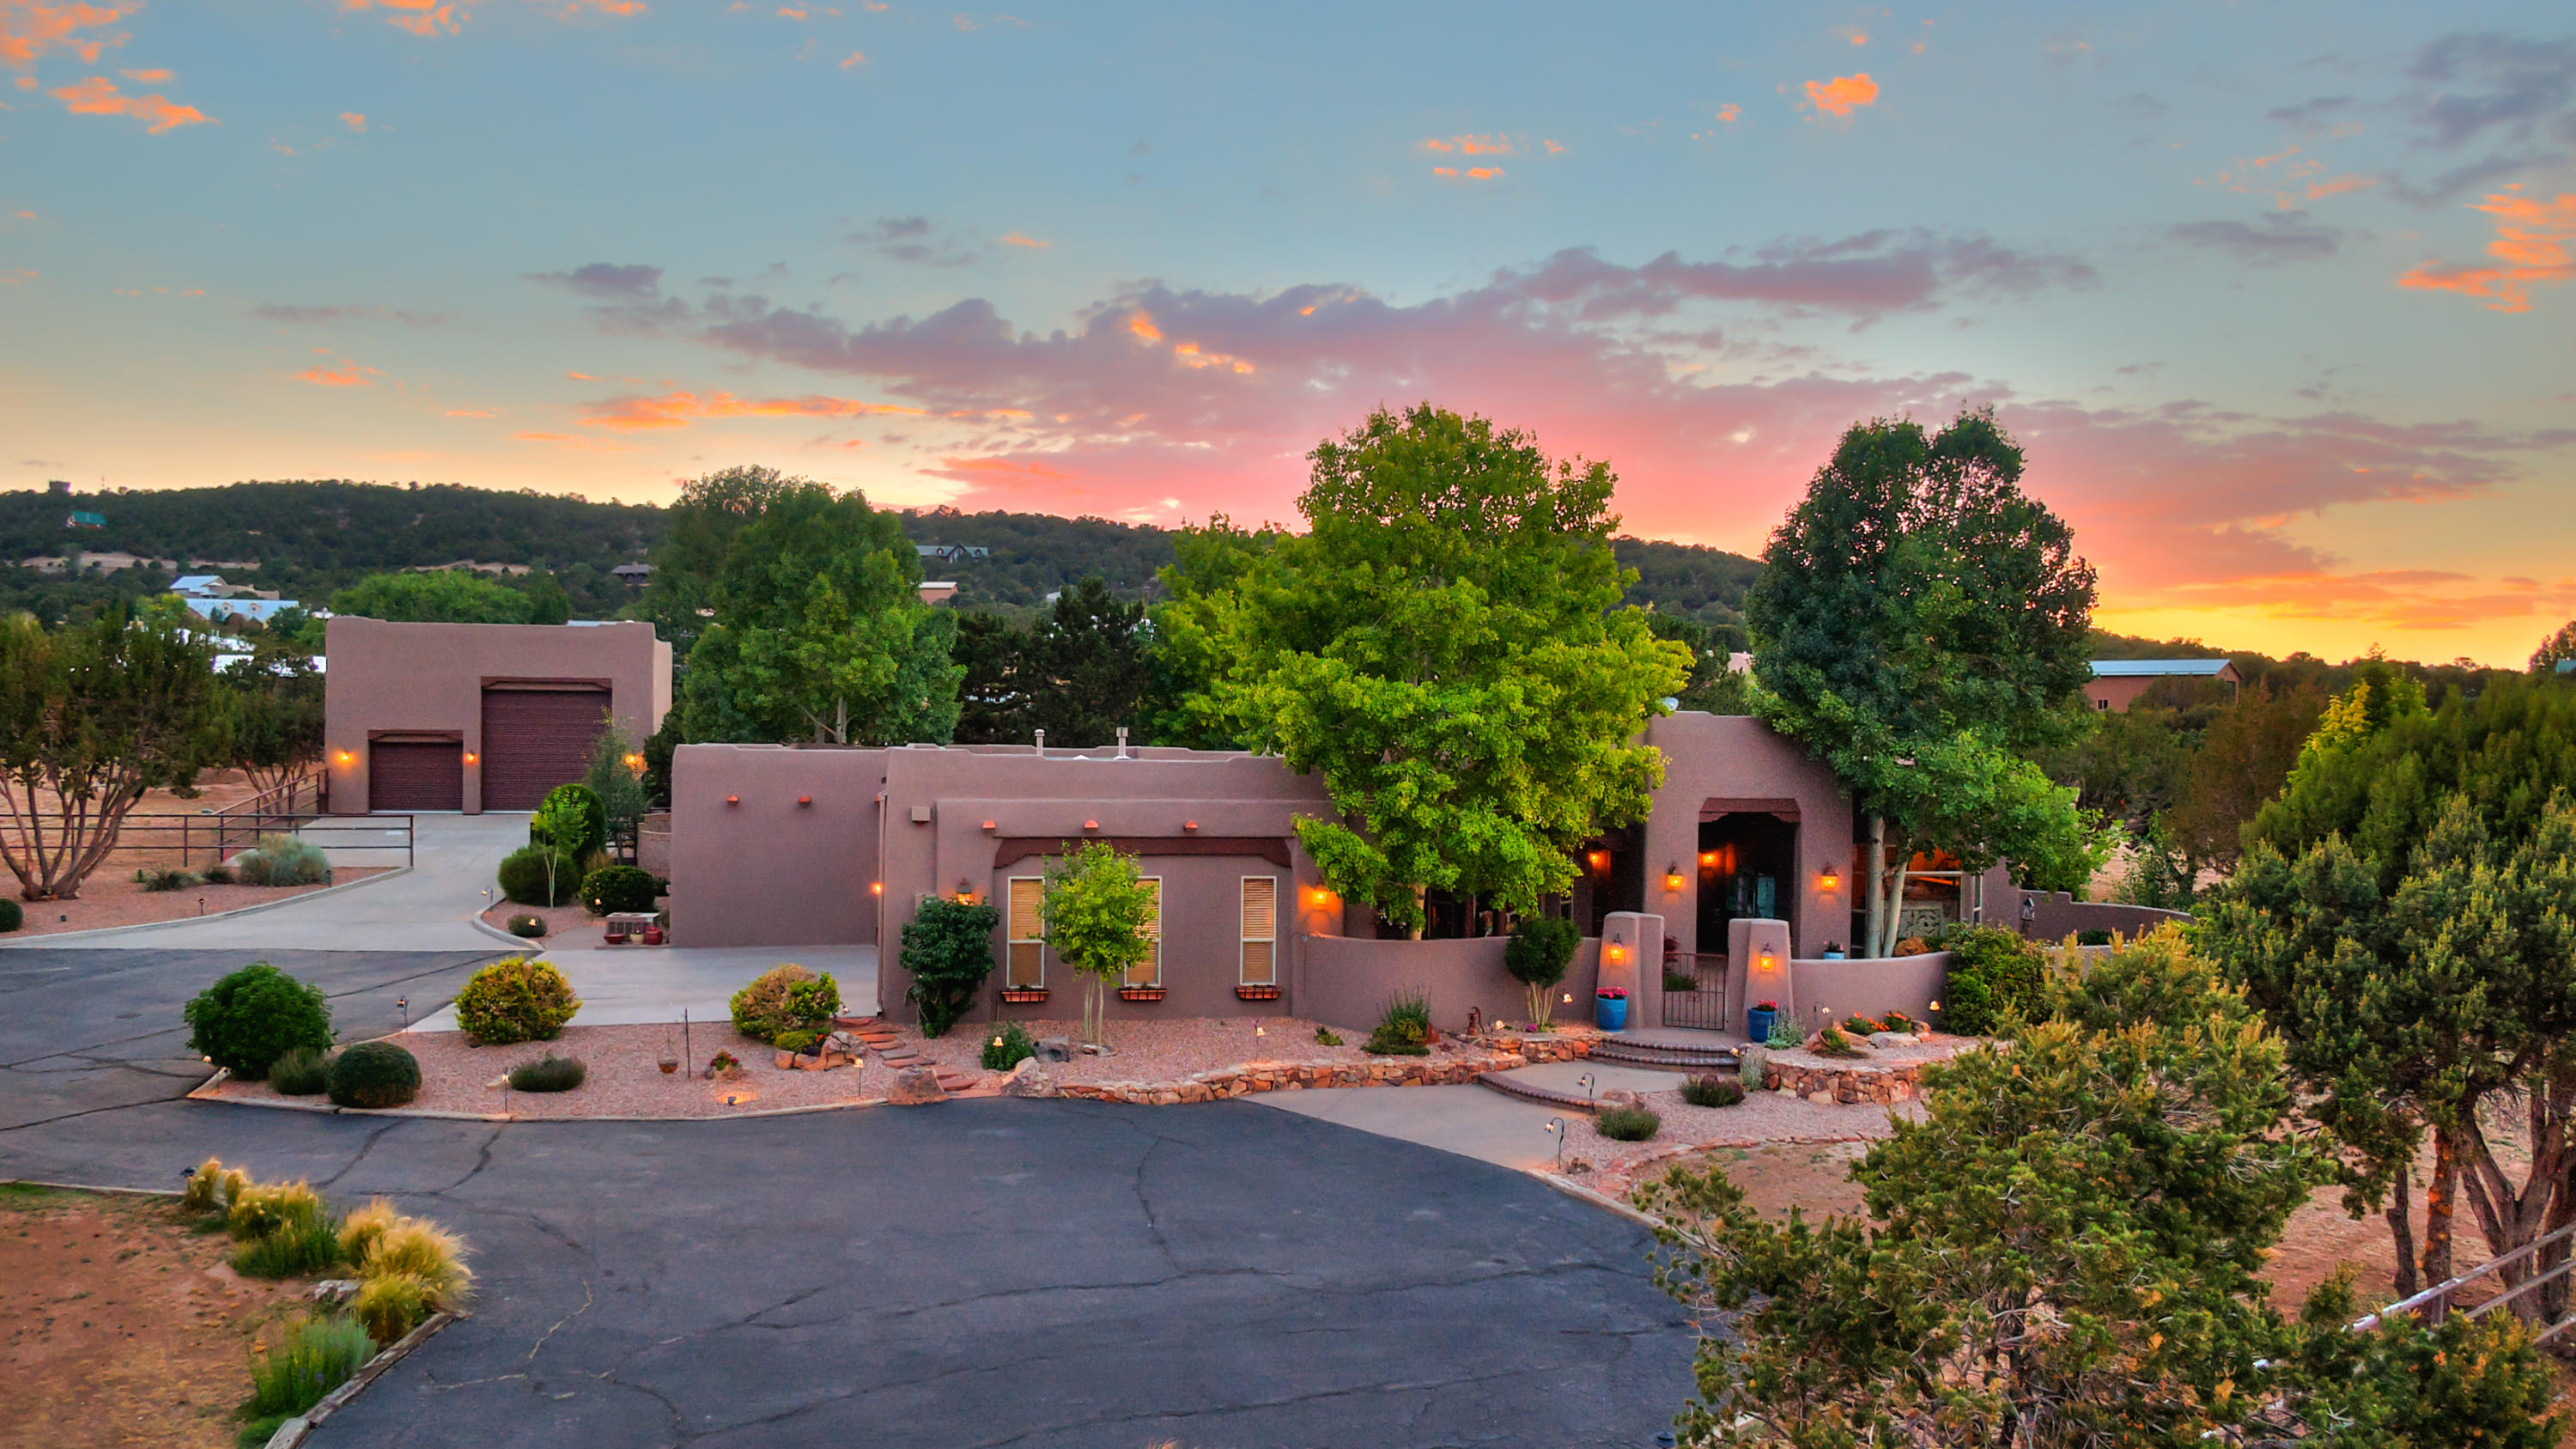 Tucked away in an upscale mountain neighborhood this updated luxury estateenjoys 3586 Sq. Ft. on 4.11 landscaped acres with 4 bedrooms 3 baths, home office and attached 3 car garage with freshly painted floors. Fully fenced with private gated entry, equestrian facilities, RV garage and flex space. Timeless quality with newer roof, stucco, LED lighting and freshly painted making it truly a move-in ready home. An entertaining floorplan complete with formal dining room, family room and open kitchen to easily access the backyard patio. Custom cabinetry, abundant storage, wood floors and tile throughout. SW features include vigas, nichos and 2 custom gas fireplaces.  Double ovens, gas stove and beautiful views while you cook make the kitchen the heart of the home.